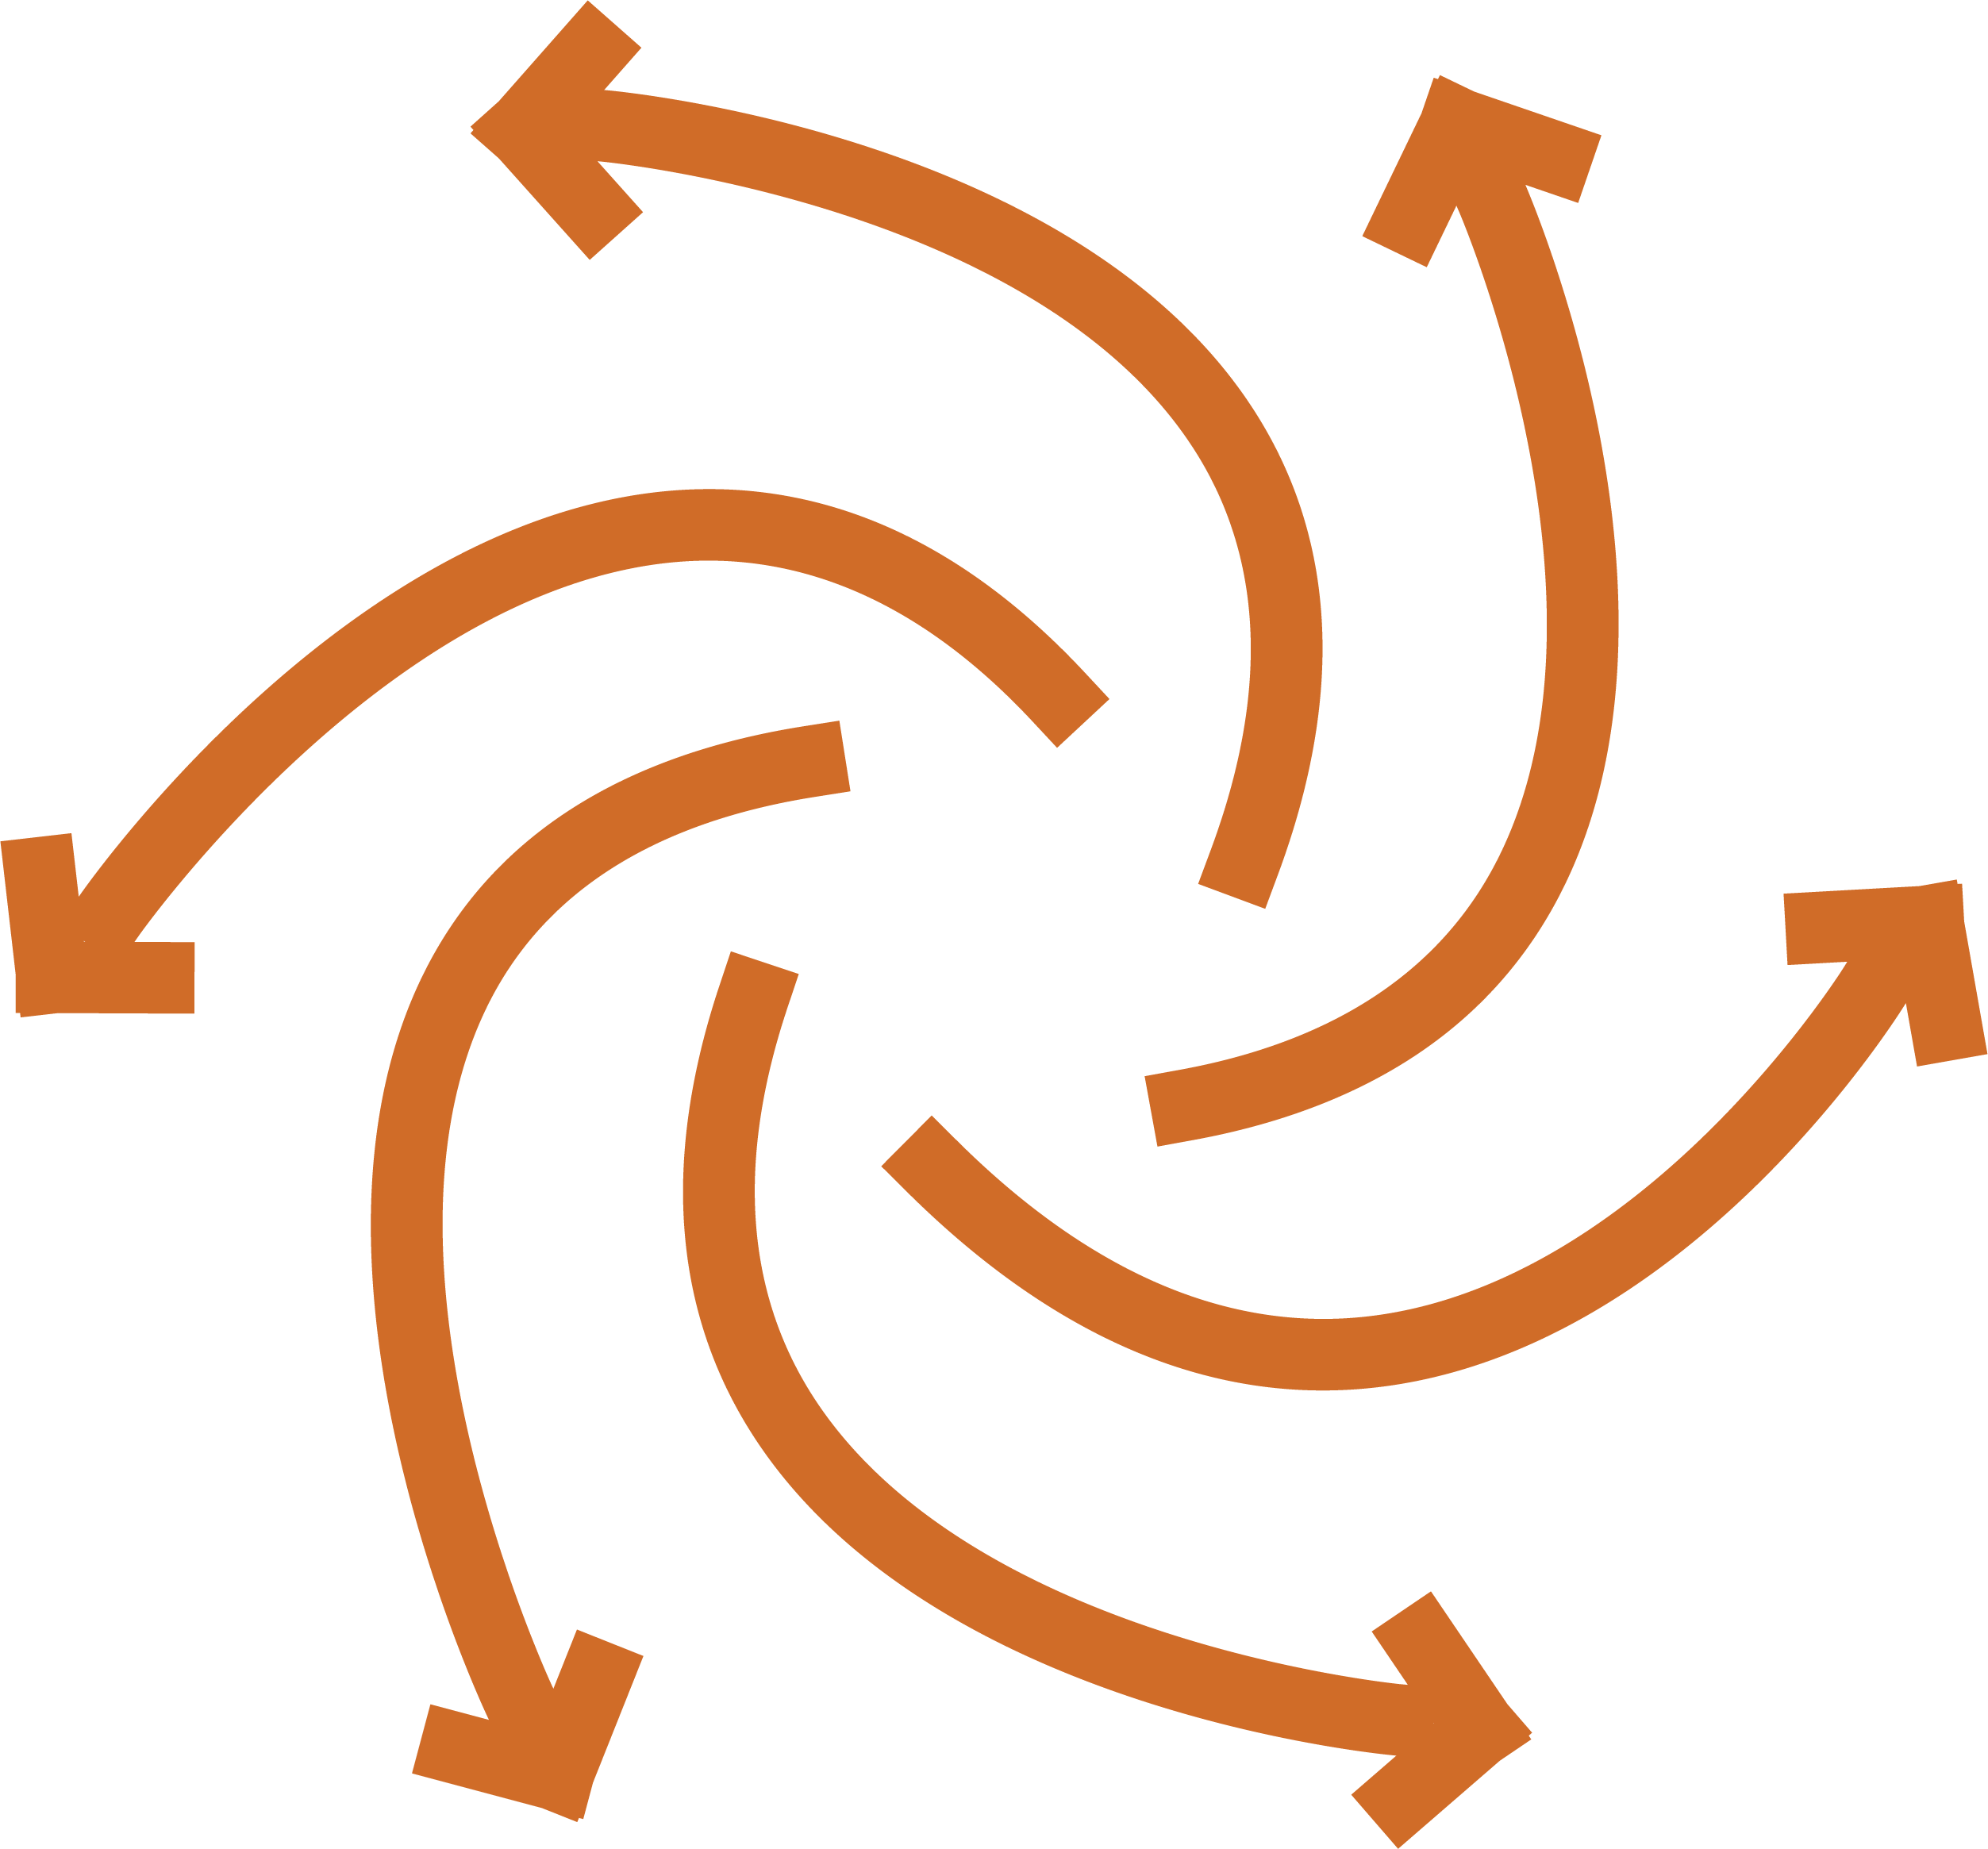 circular orange arrows facing outward